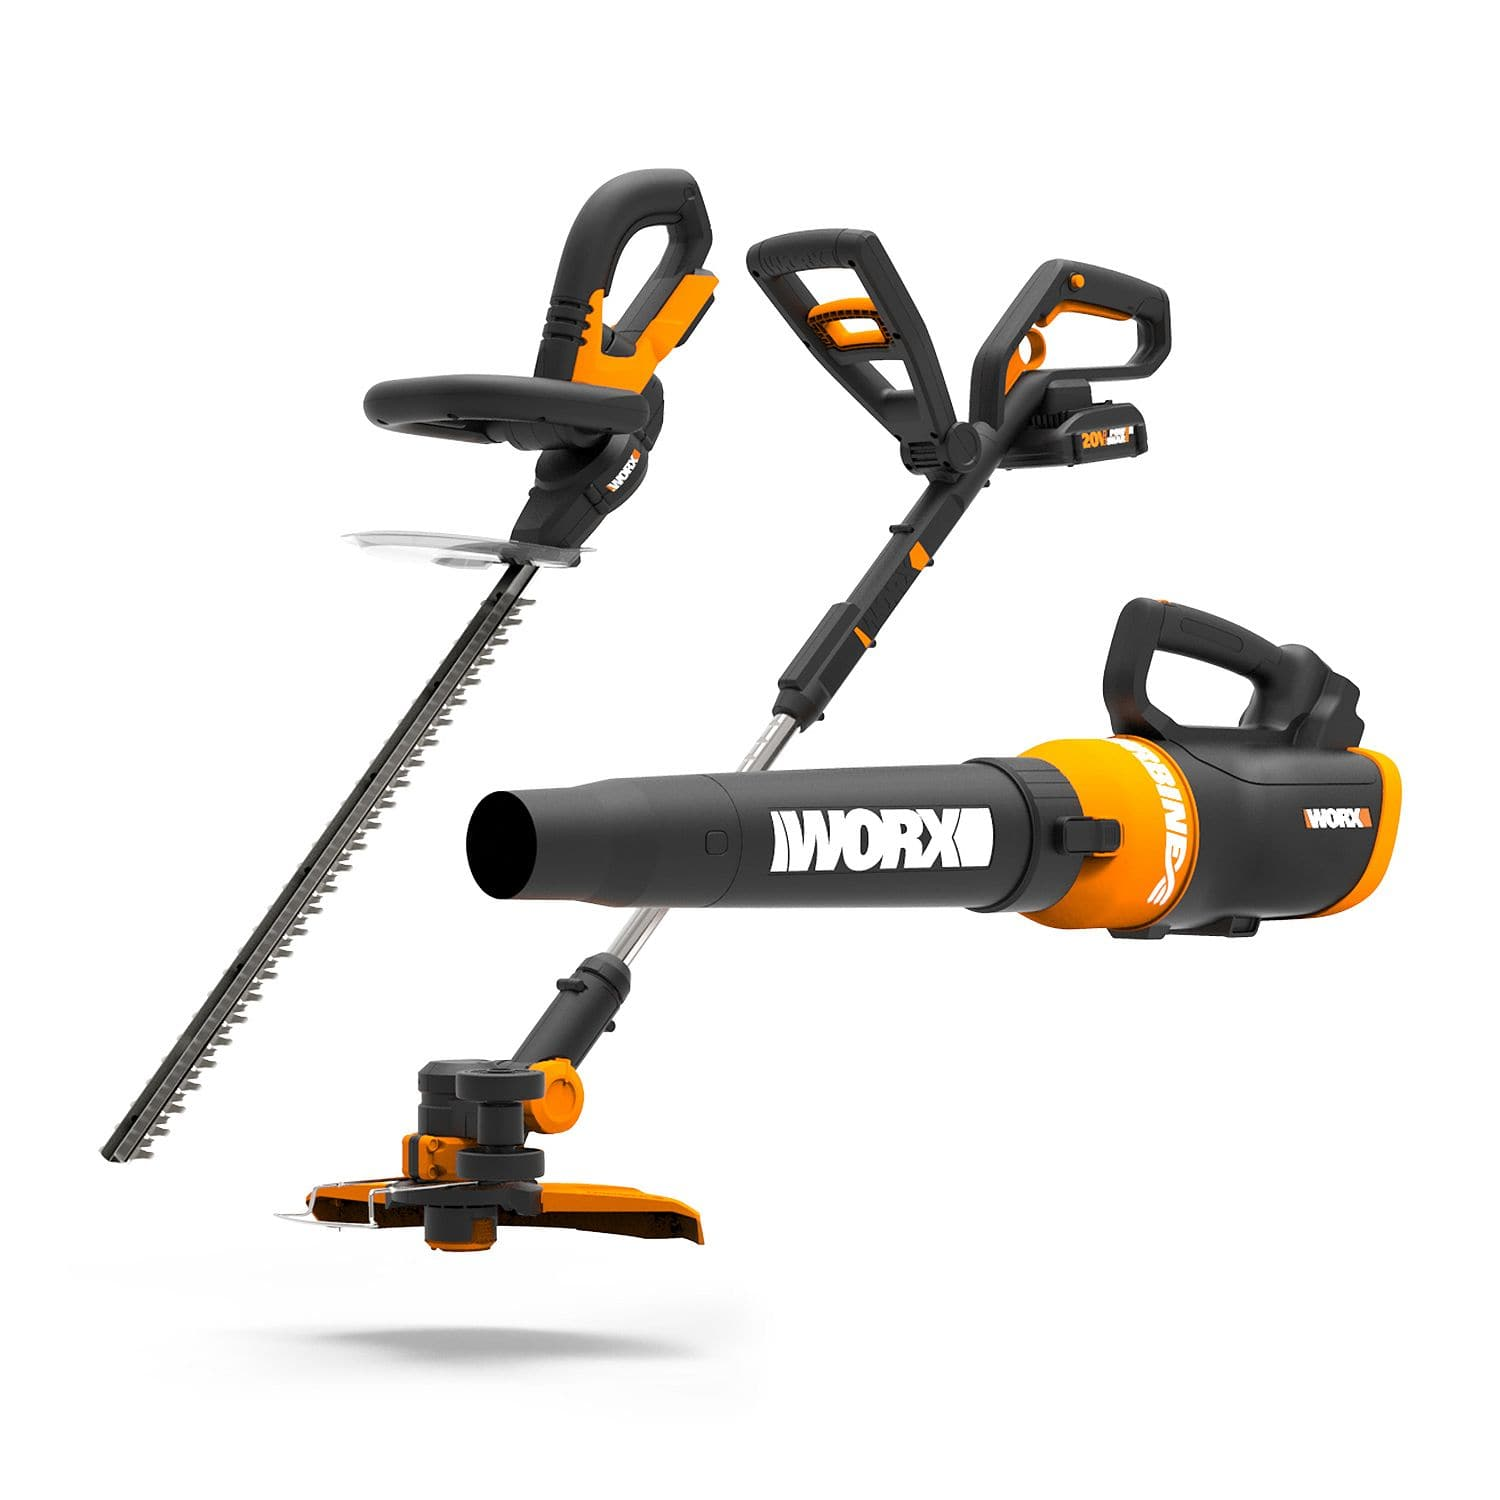 WORX 20V Li-ion 3-Piece Combo Kit (Trimmer, Hedge-Trimmer, and Blower) Inclu 2 batteries and Charger. Free shipping $159.98